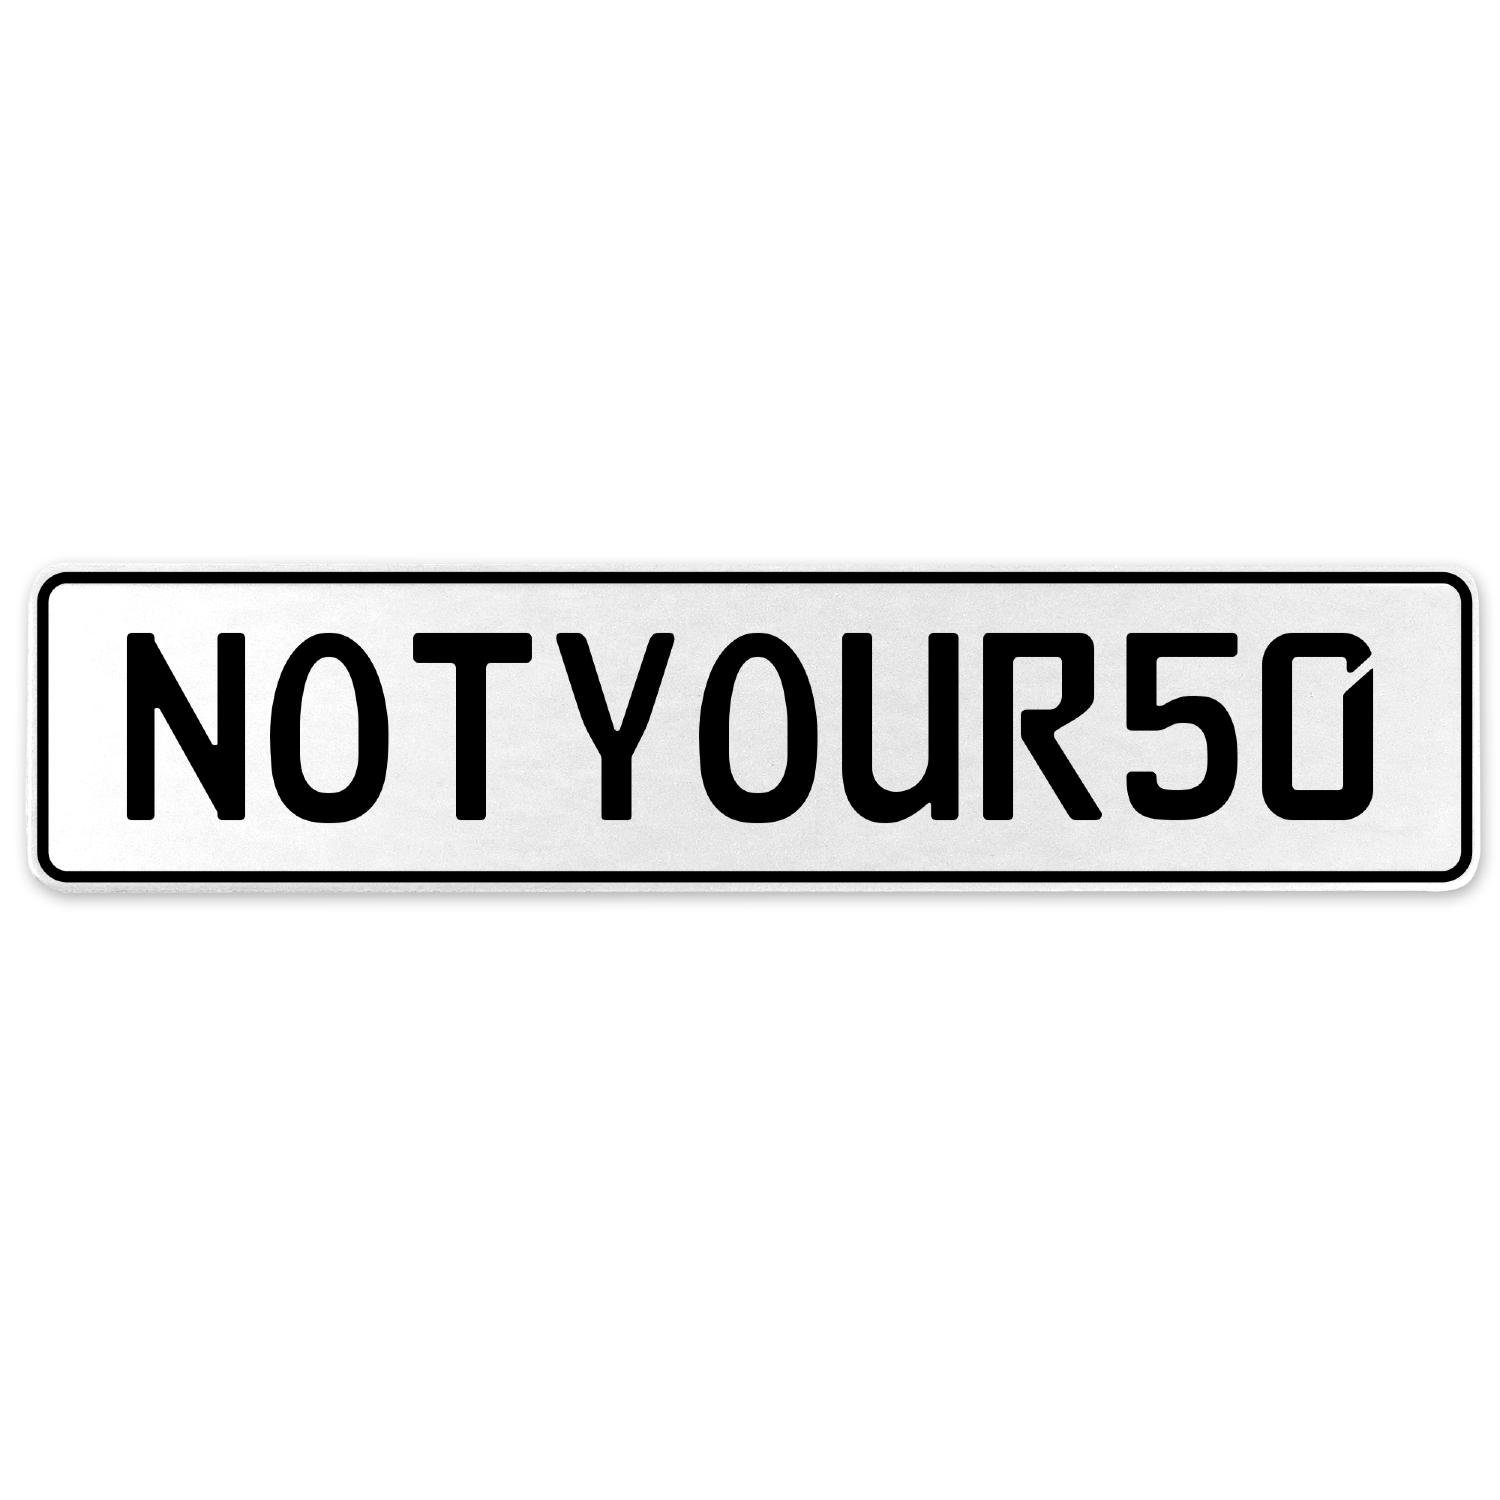 Vintage Parts 555439 NOTYOUR50 White Stamped Aluminum European License Plate